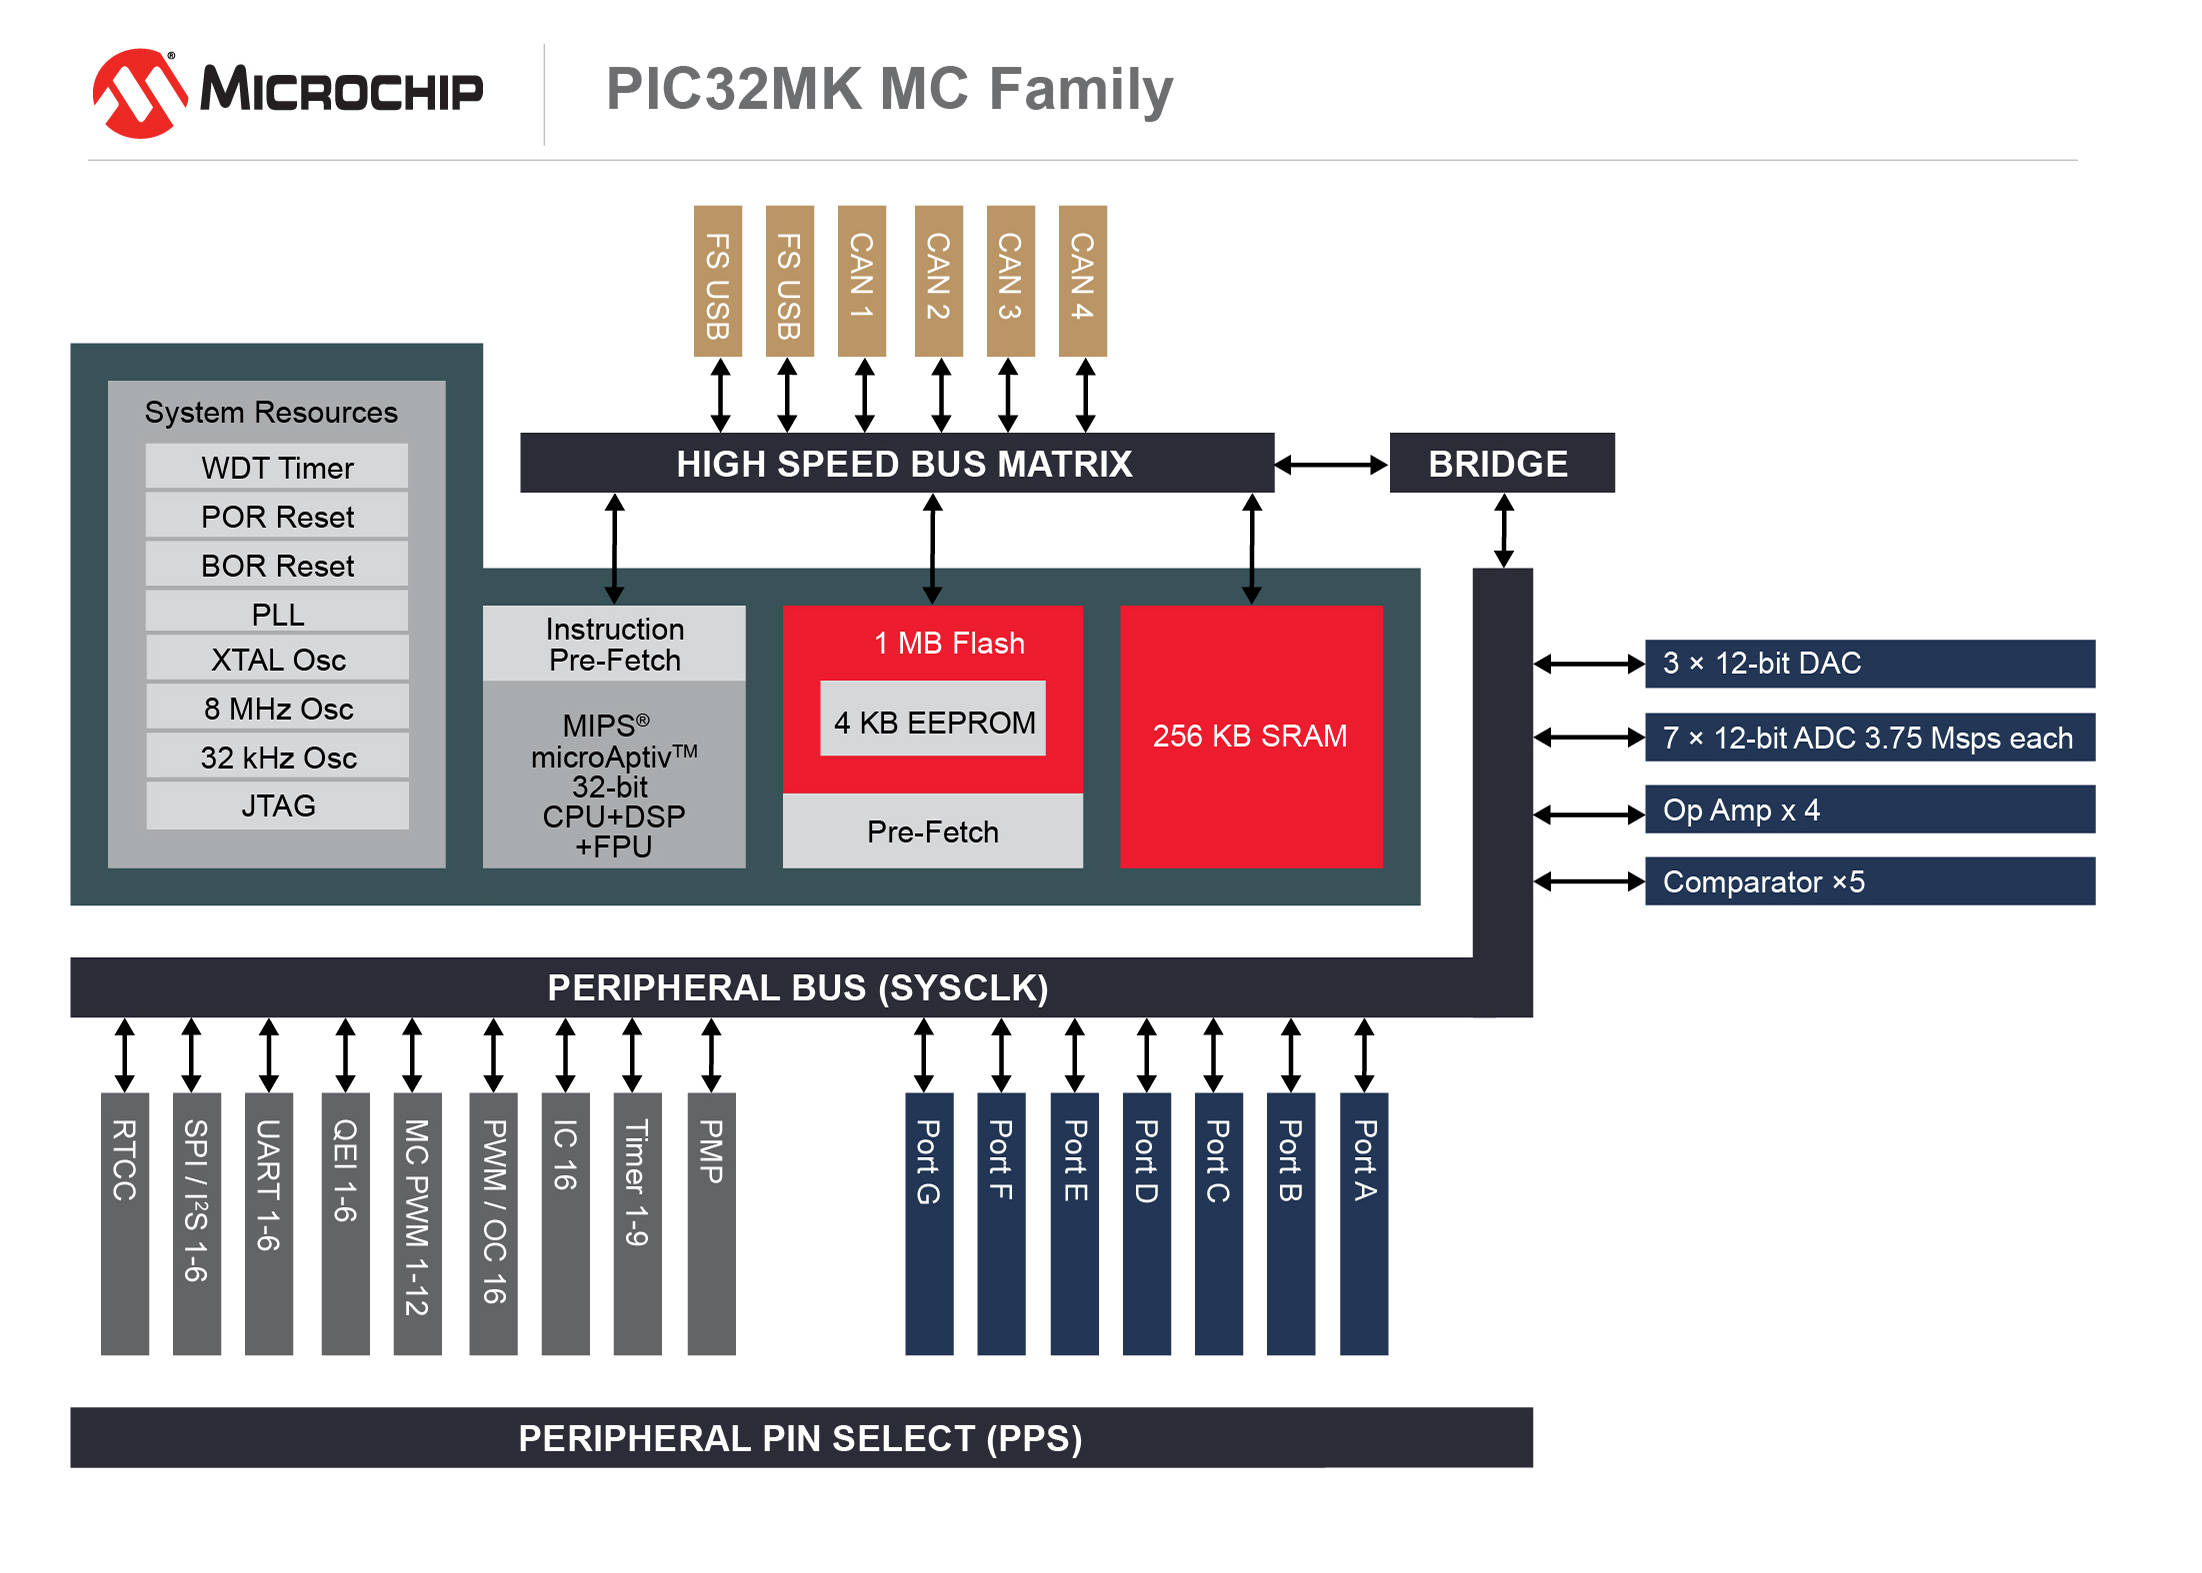 Architecture 32 Bit Pic Microcontrollers Microchip Technology Mac Os X Block Diagram Pic32mk